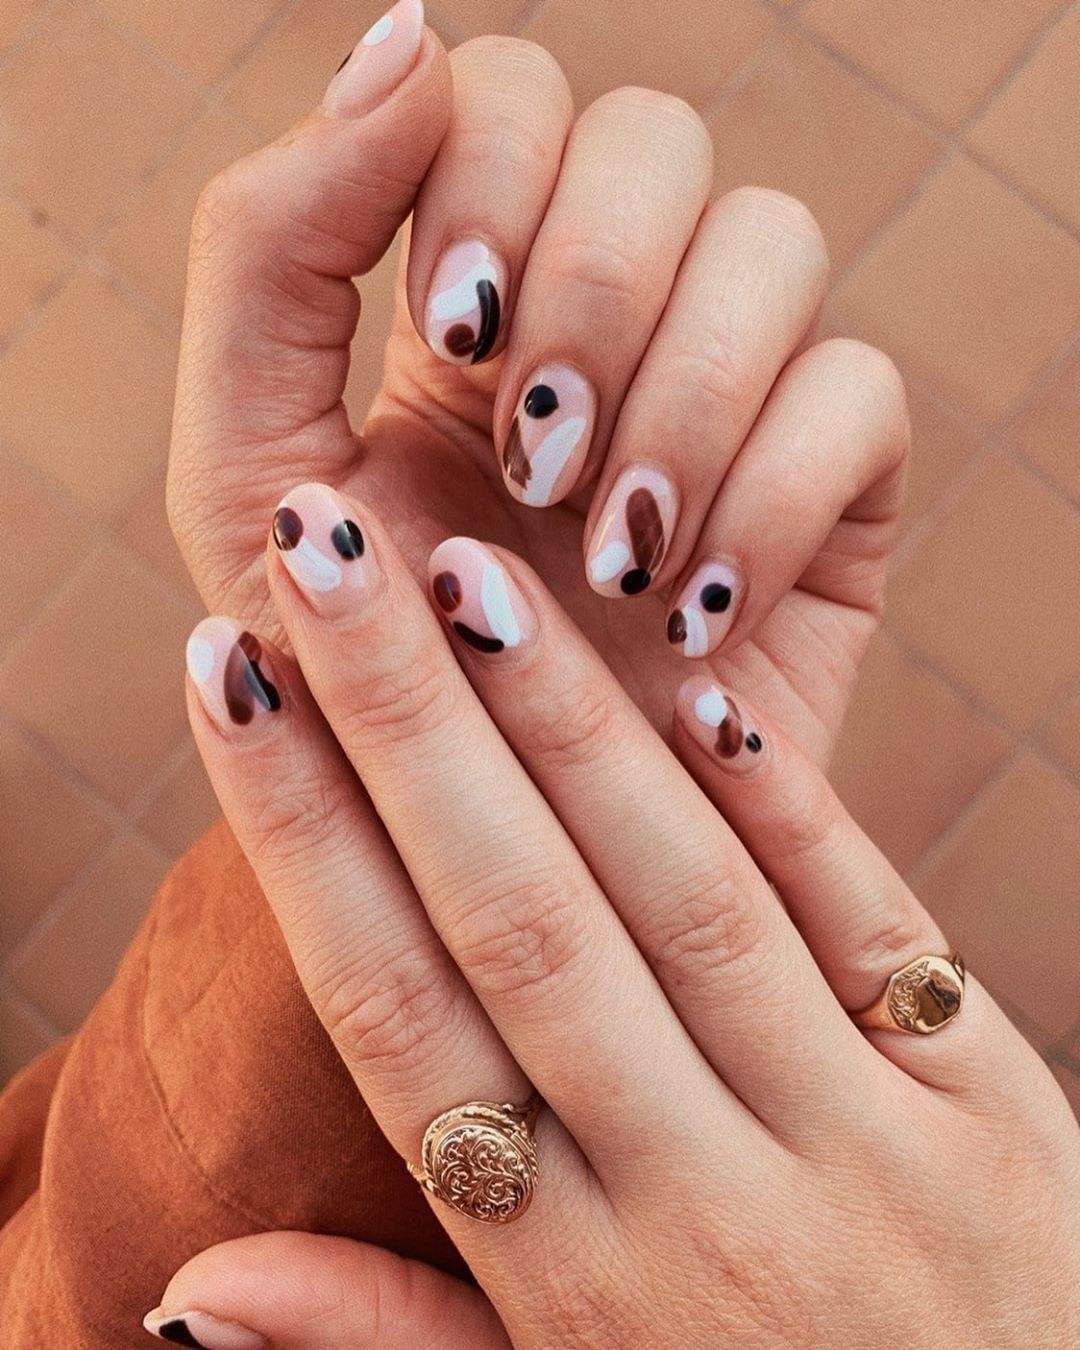 6 Short Gel Nail Designs